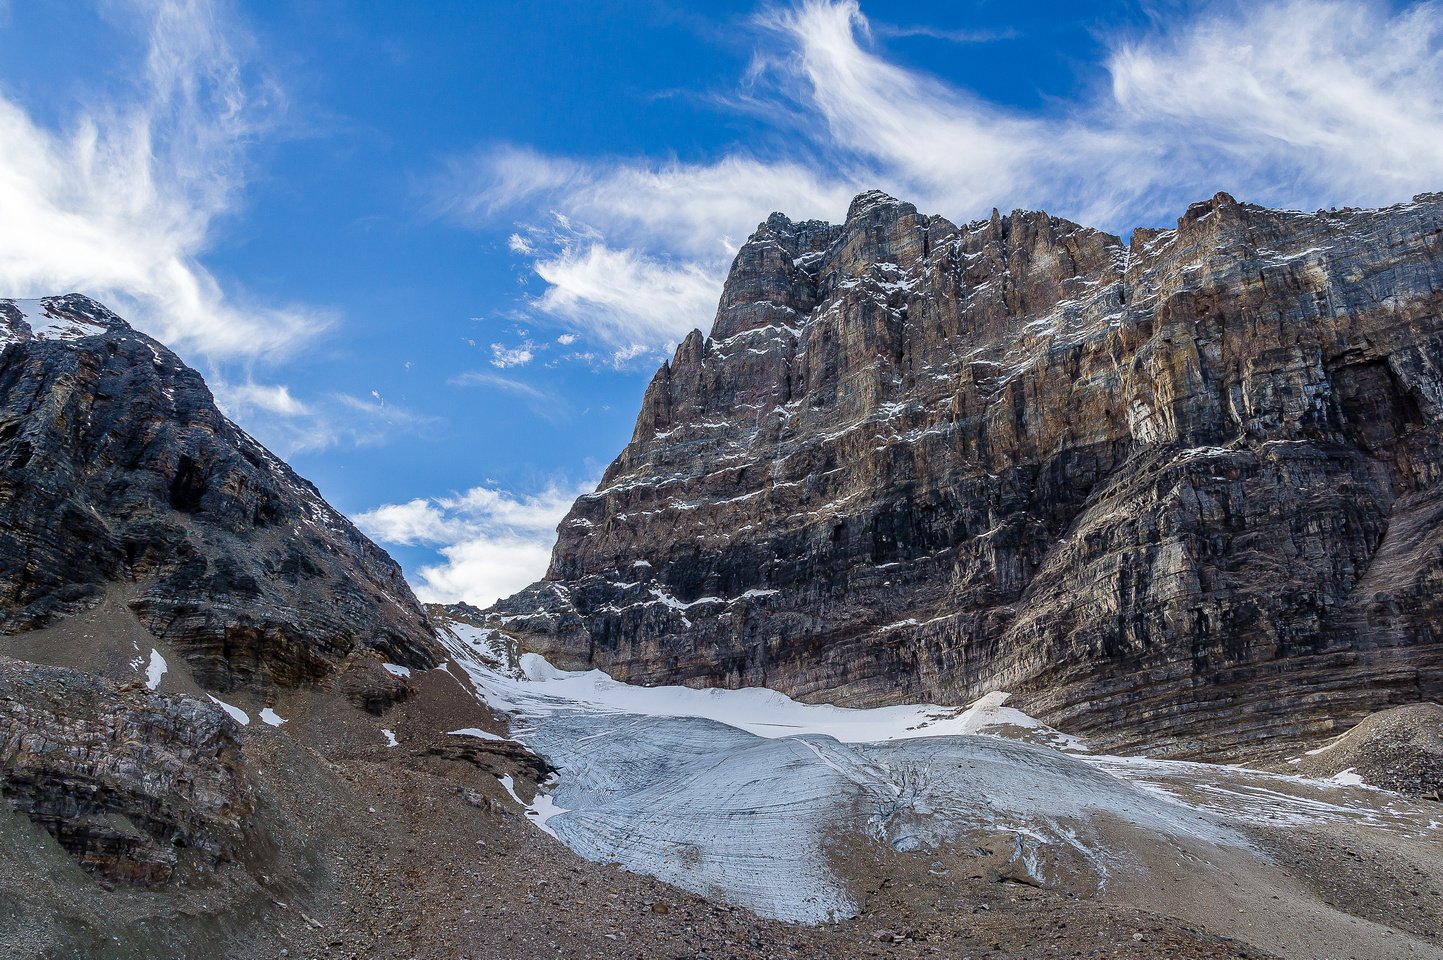 The Opabin Glacier is tame, but is quite broken and requires crampons to get up and down safely.